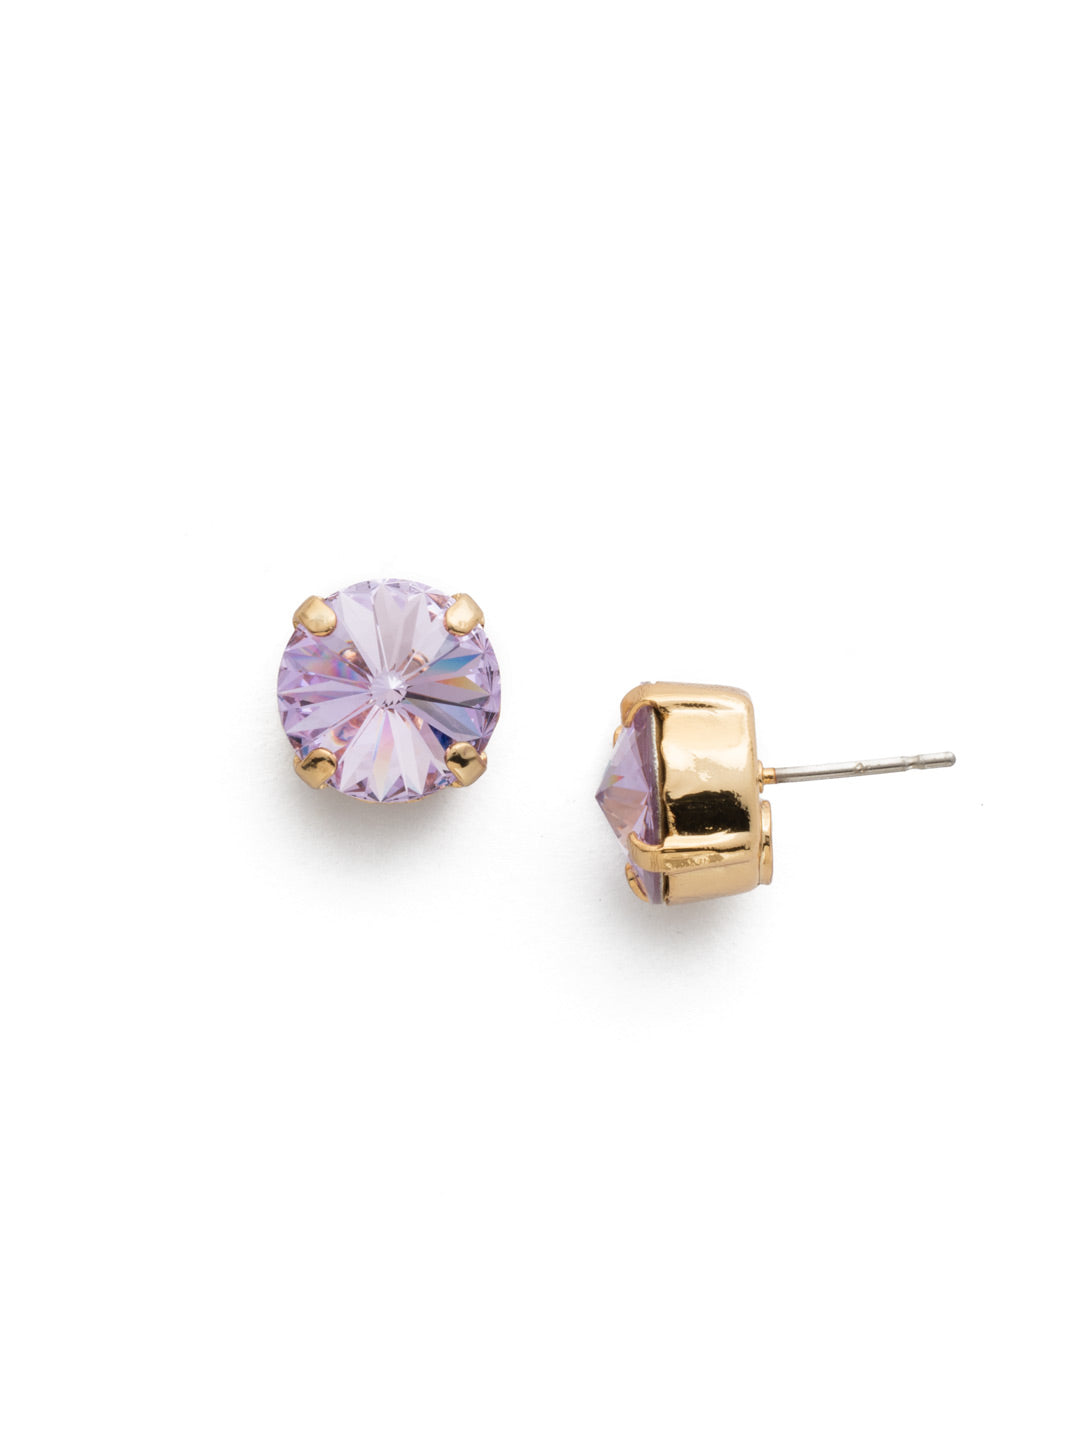 Round Crystal Stud Earrings - ECM14BGVI